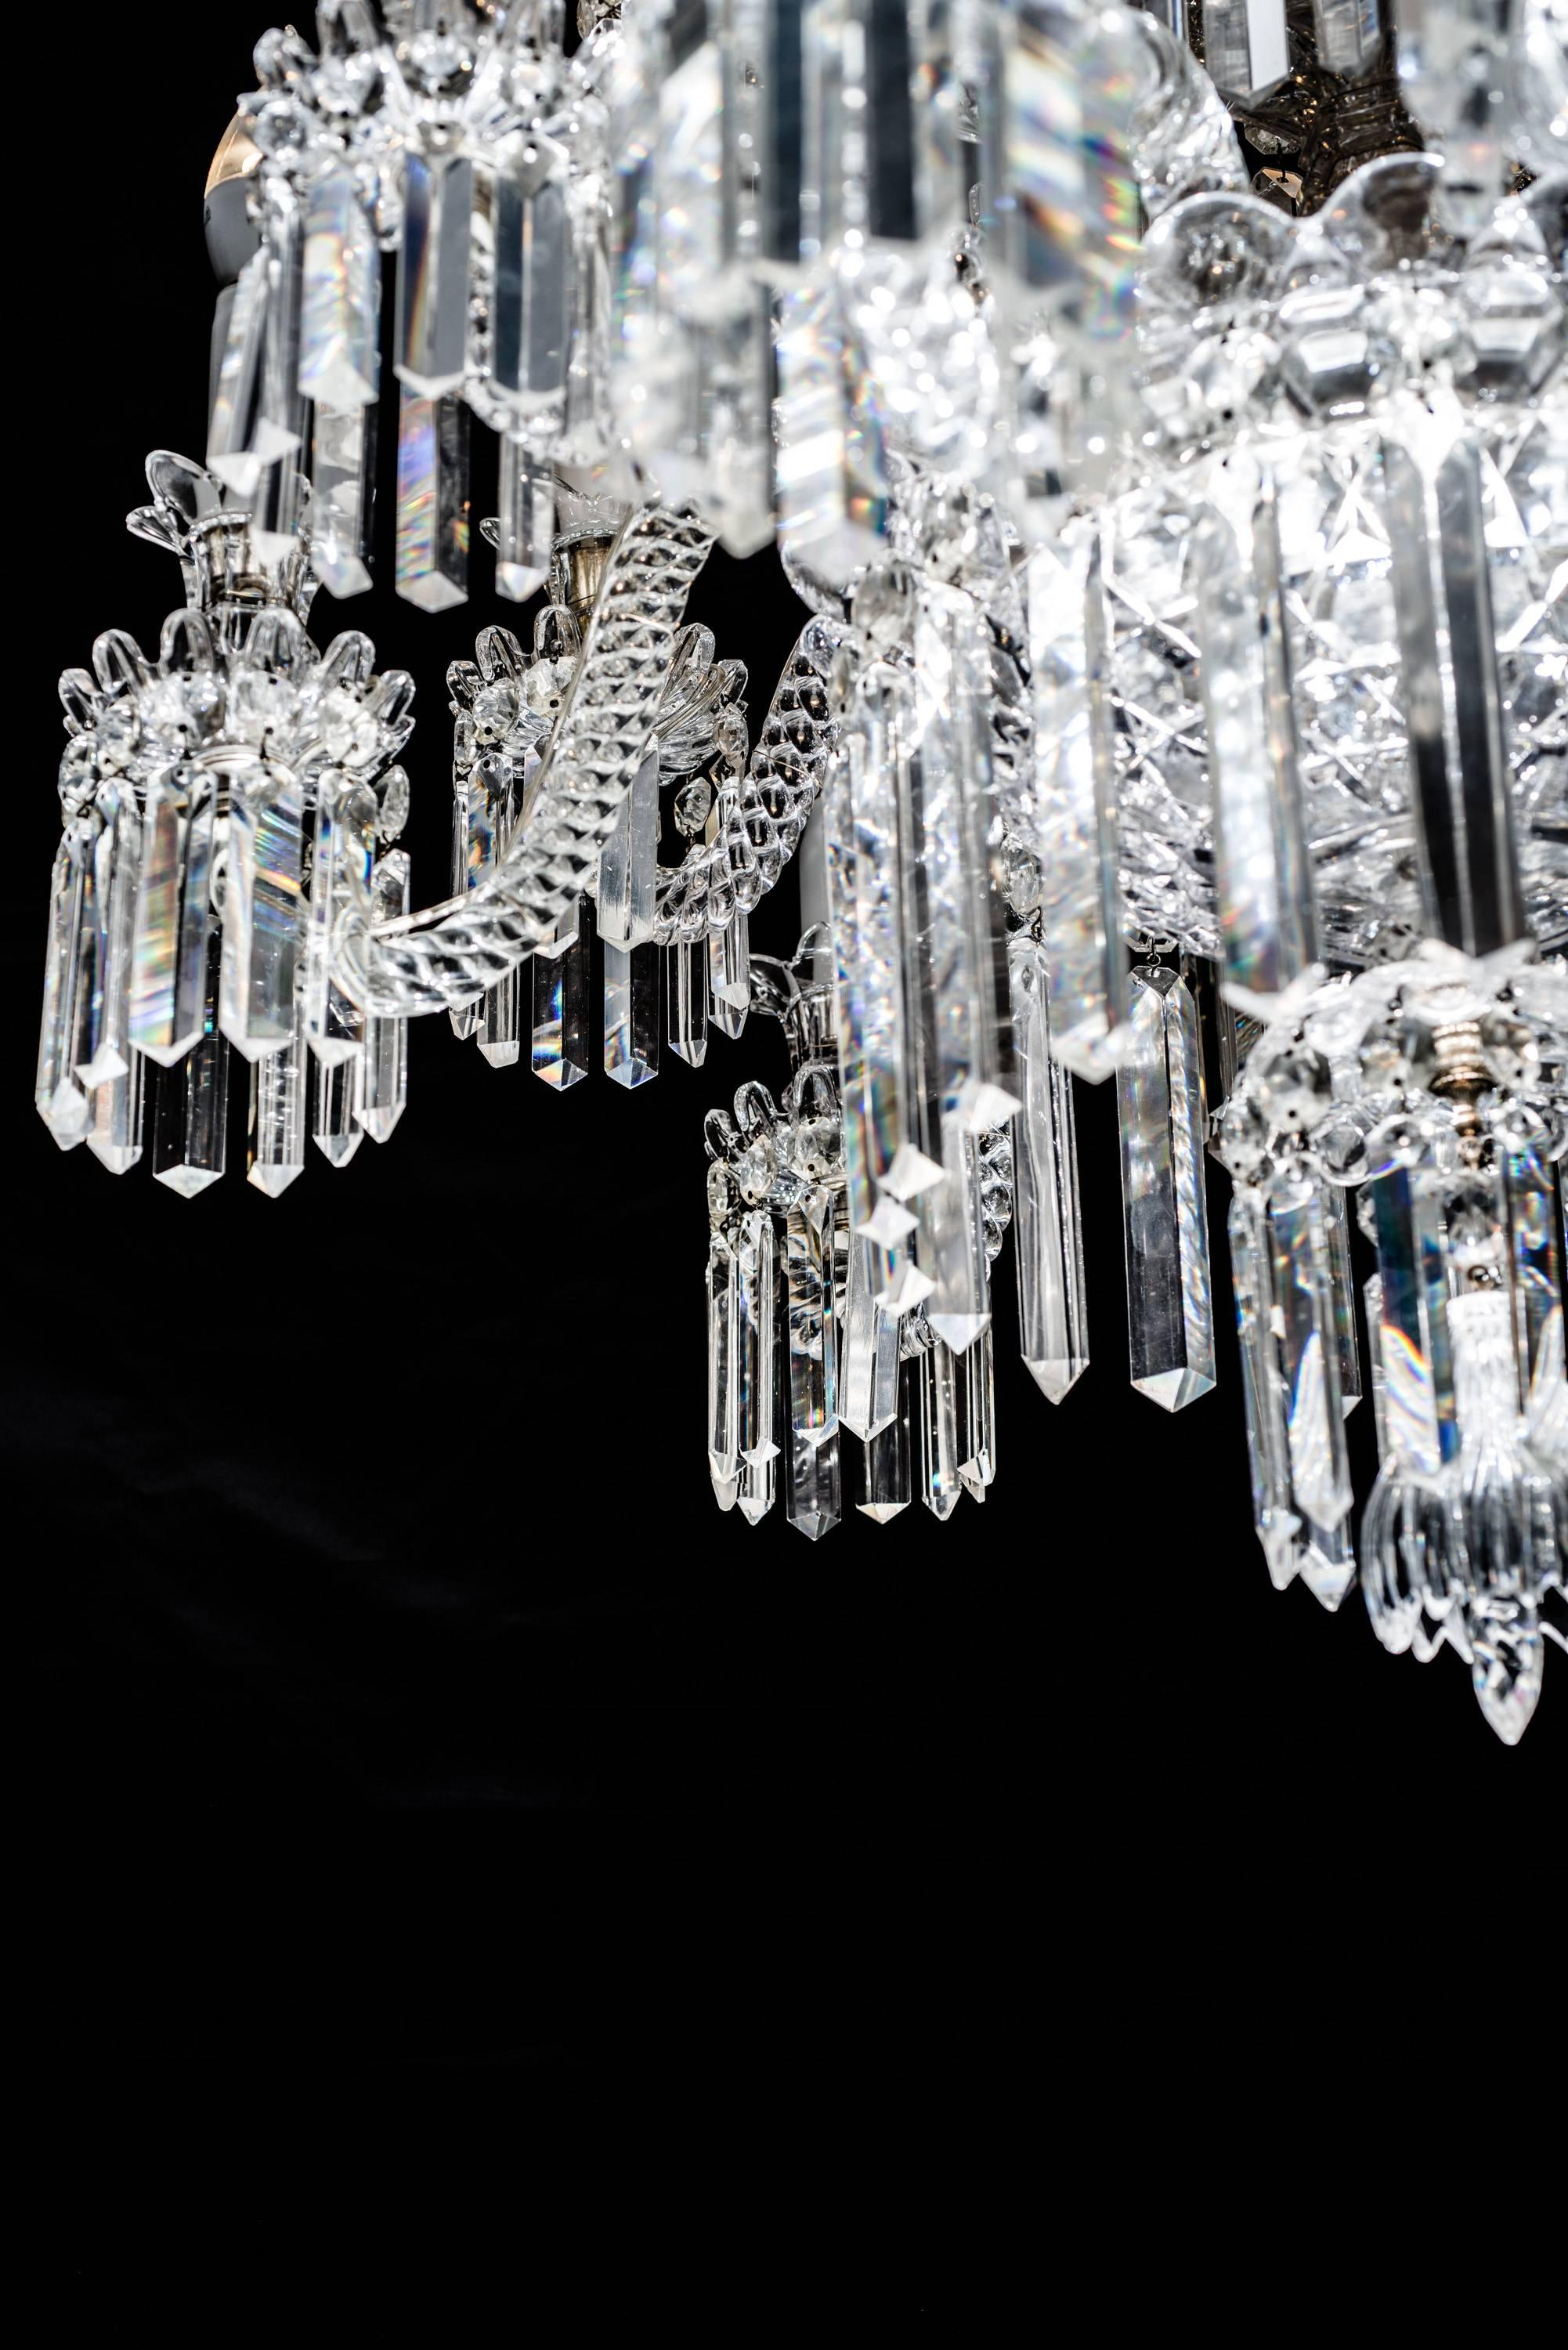 Important Crystal Chandelier of Baccarat France 1850s For Sale at 1stdibs : baccarat lighting - www.canuckmediamonitor.org